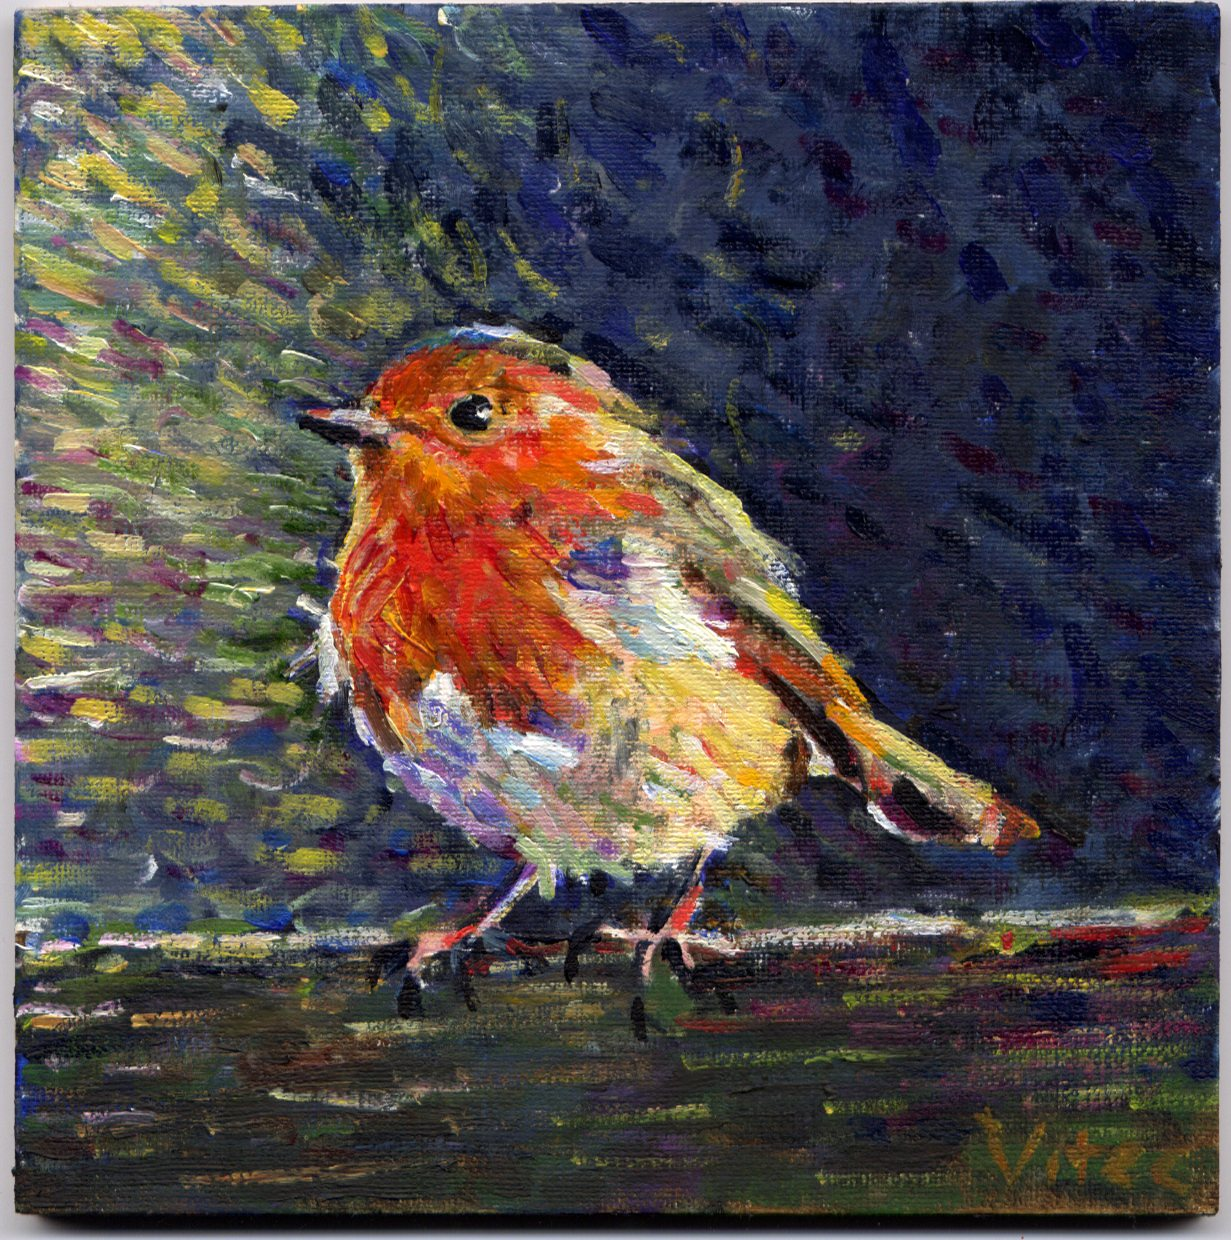 Birds painting by Vitec: Two birds Wren and Robin